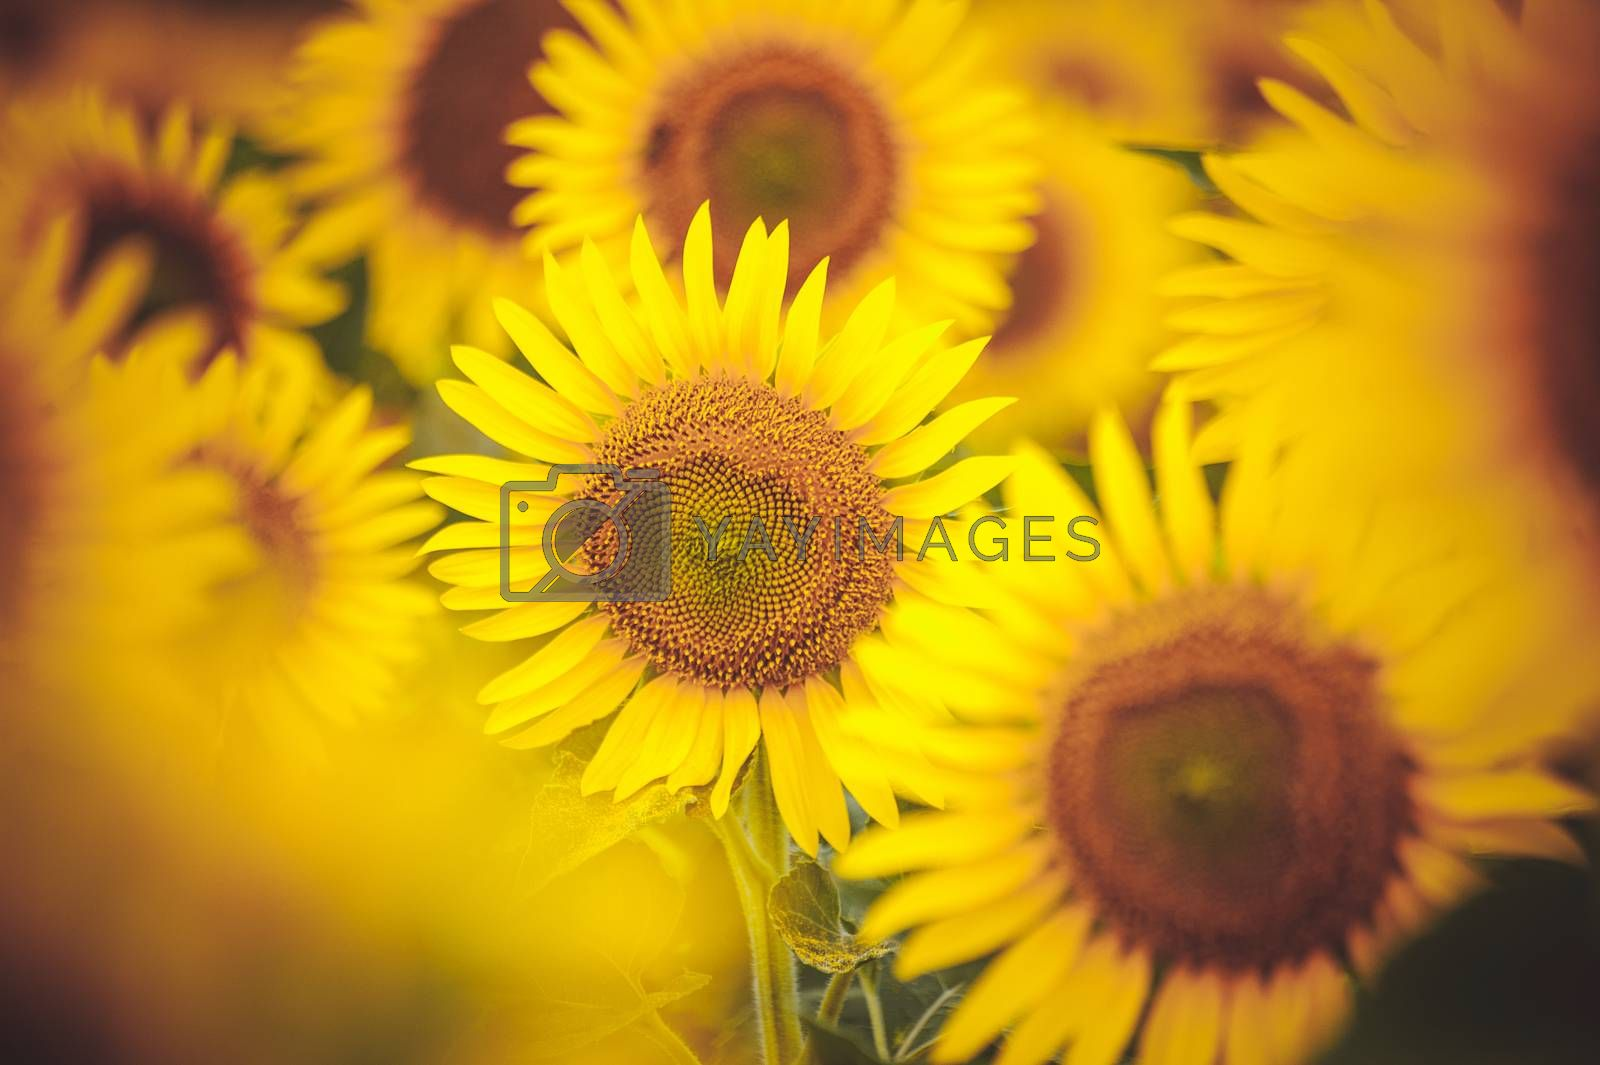 group of  yellow sunflowers in field close up